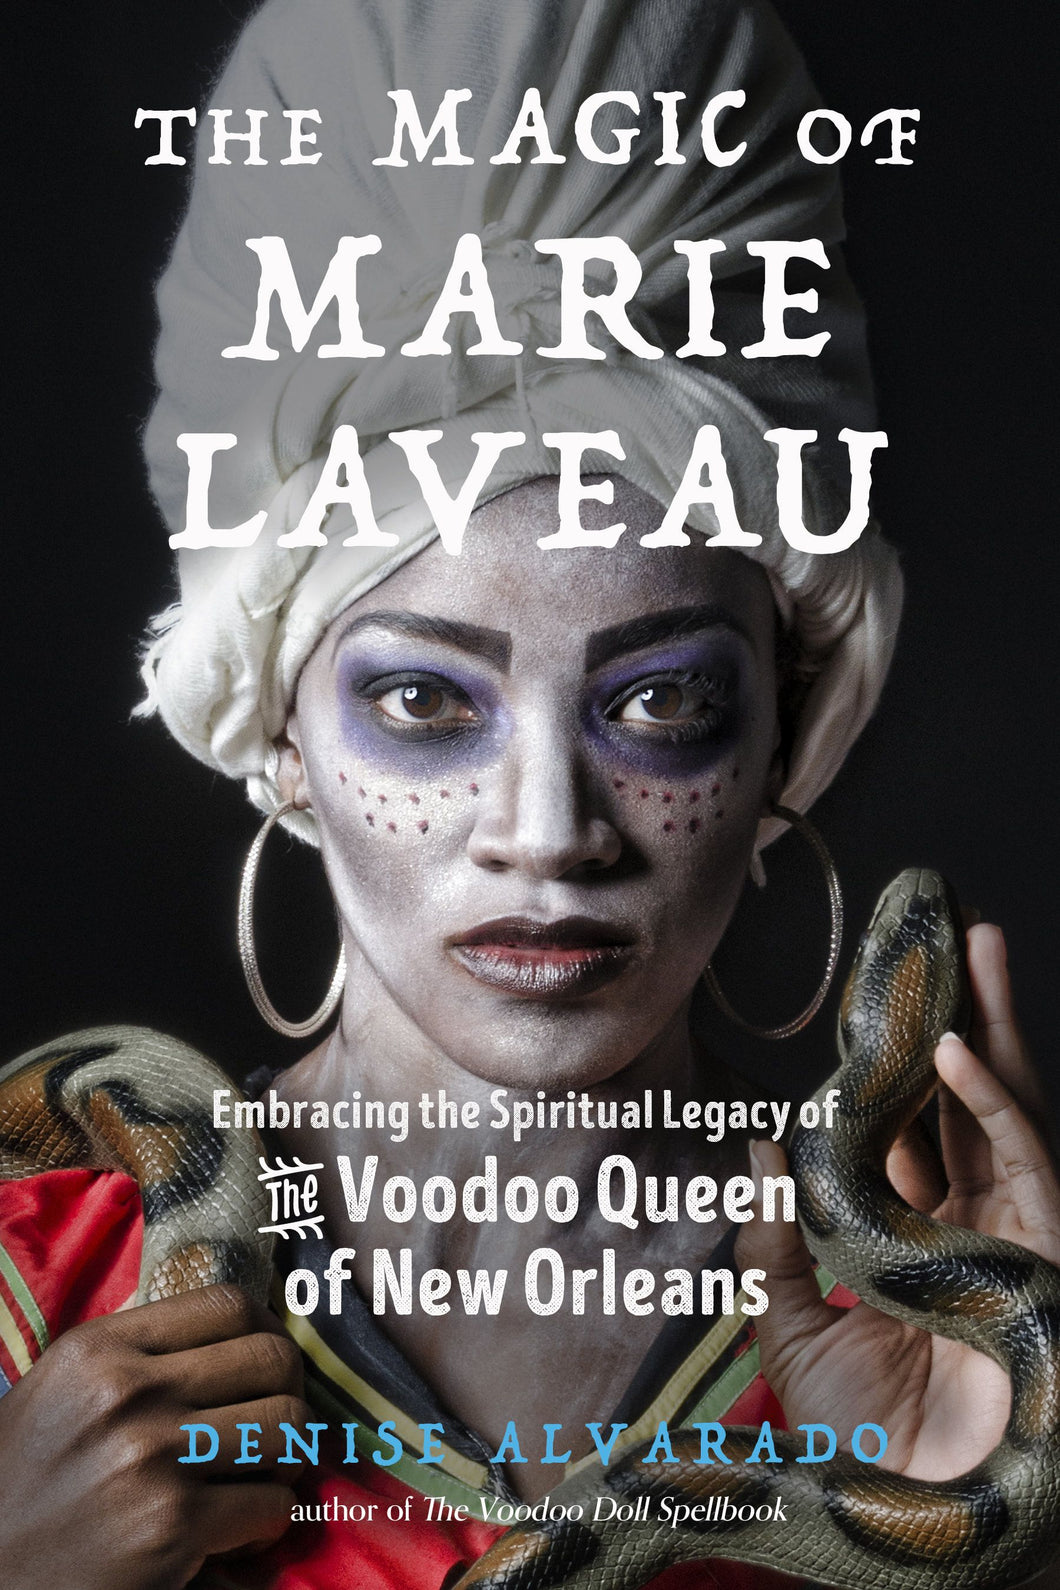 The Magic of Marie Laveau (Denise Alvarado)